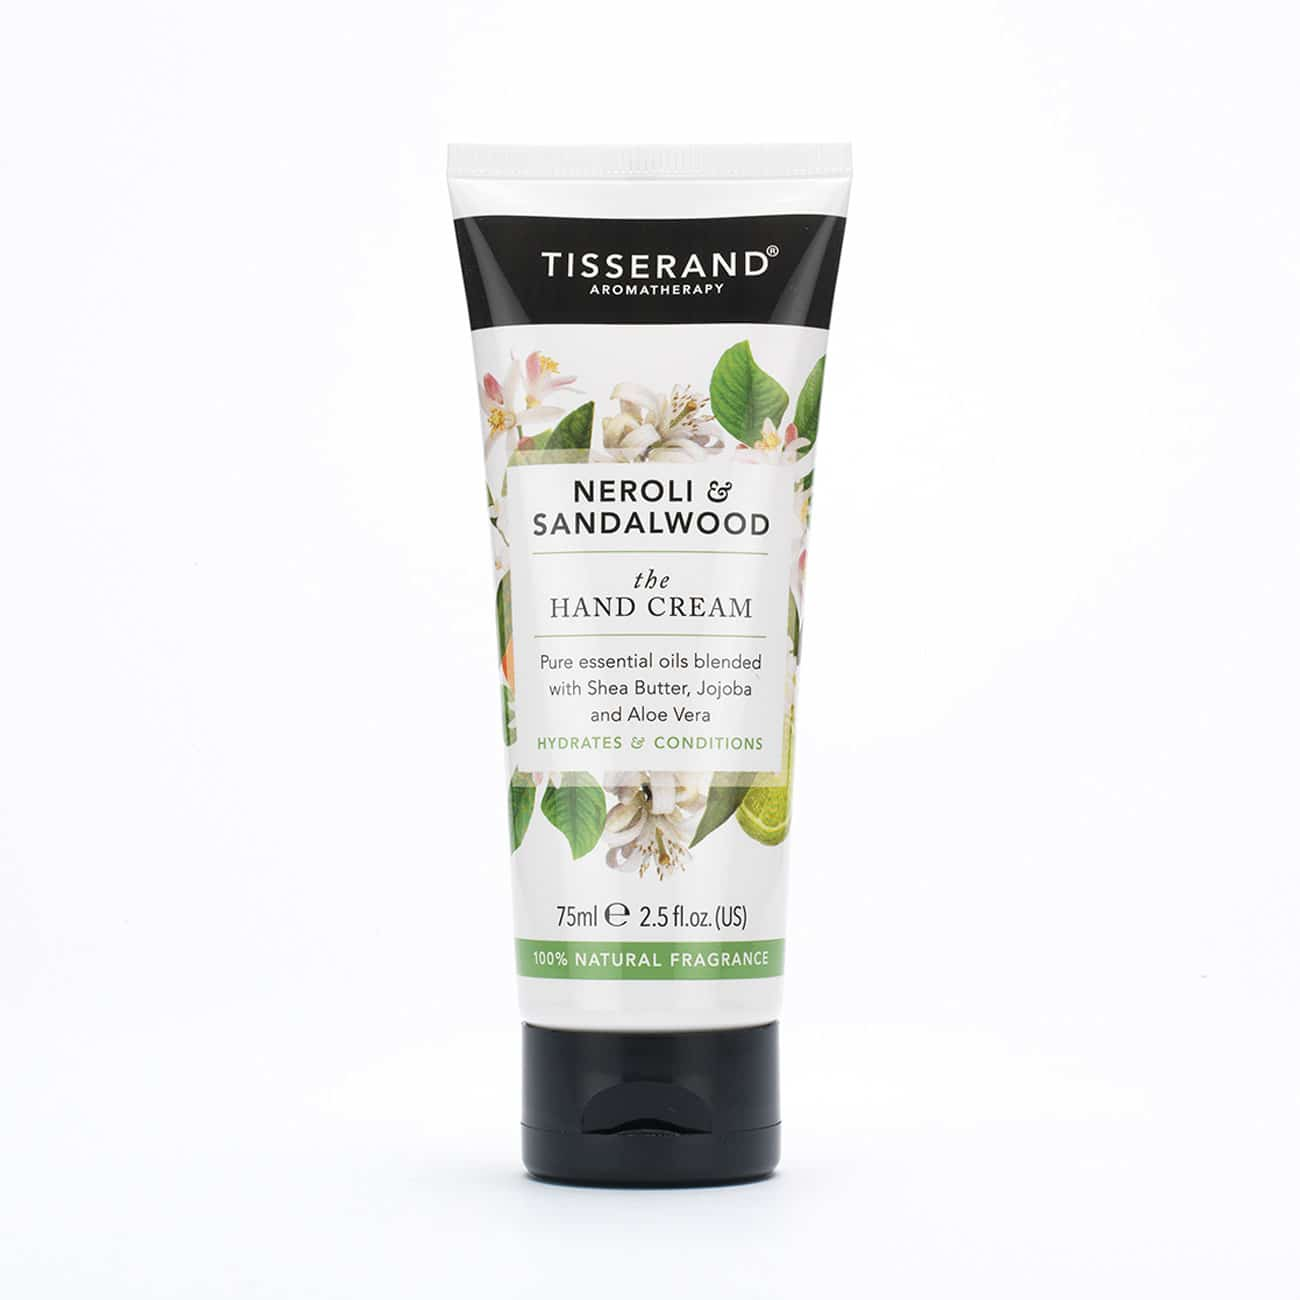 Tisserand-Aromatherapy-Neroli-and-Sandalwood-Hand-Cream